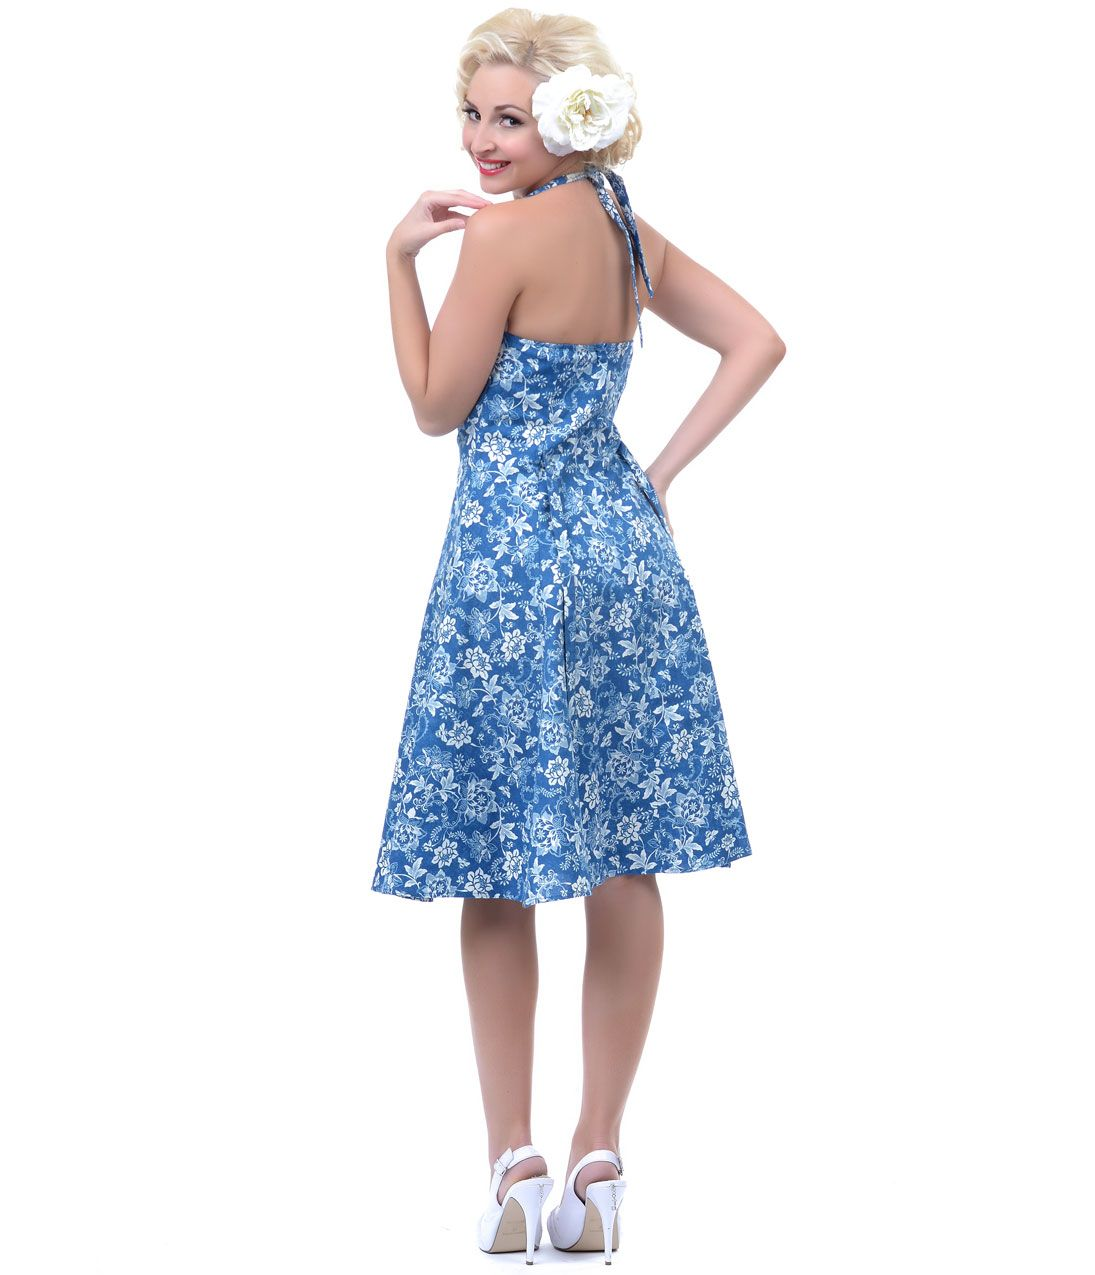 1950's Style Heartbreaker Blue Teresa Sweetie Dress - Unique Vintage - Prom dresses, retro dresses, retro swimsuits.